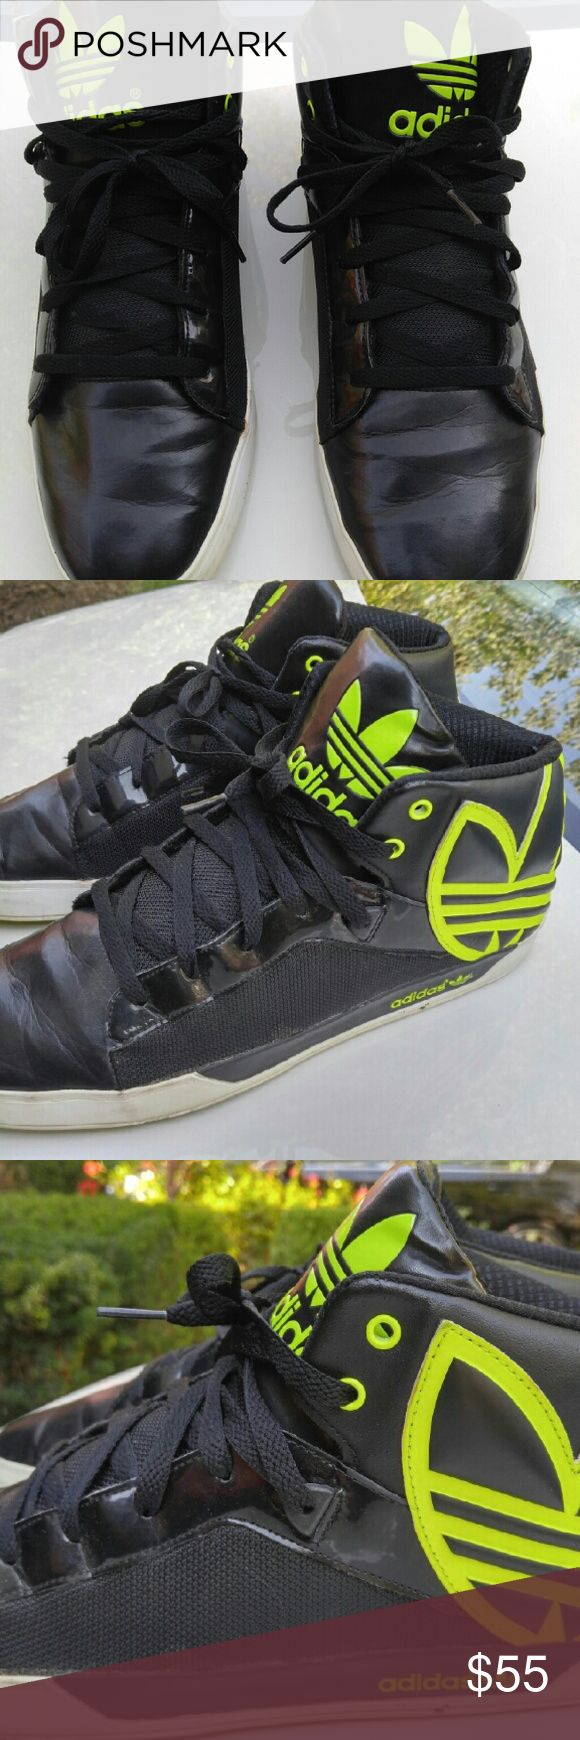 Mens Adidas Vulc West Originals Sneakers Awesome Adidas Vulc Shoes in Black and Electric Yellow. adidas Shoes Sneakers